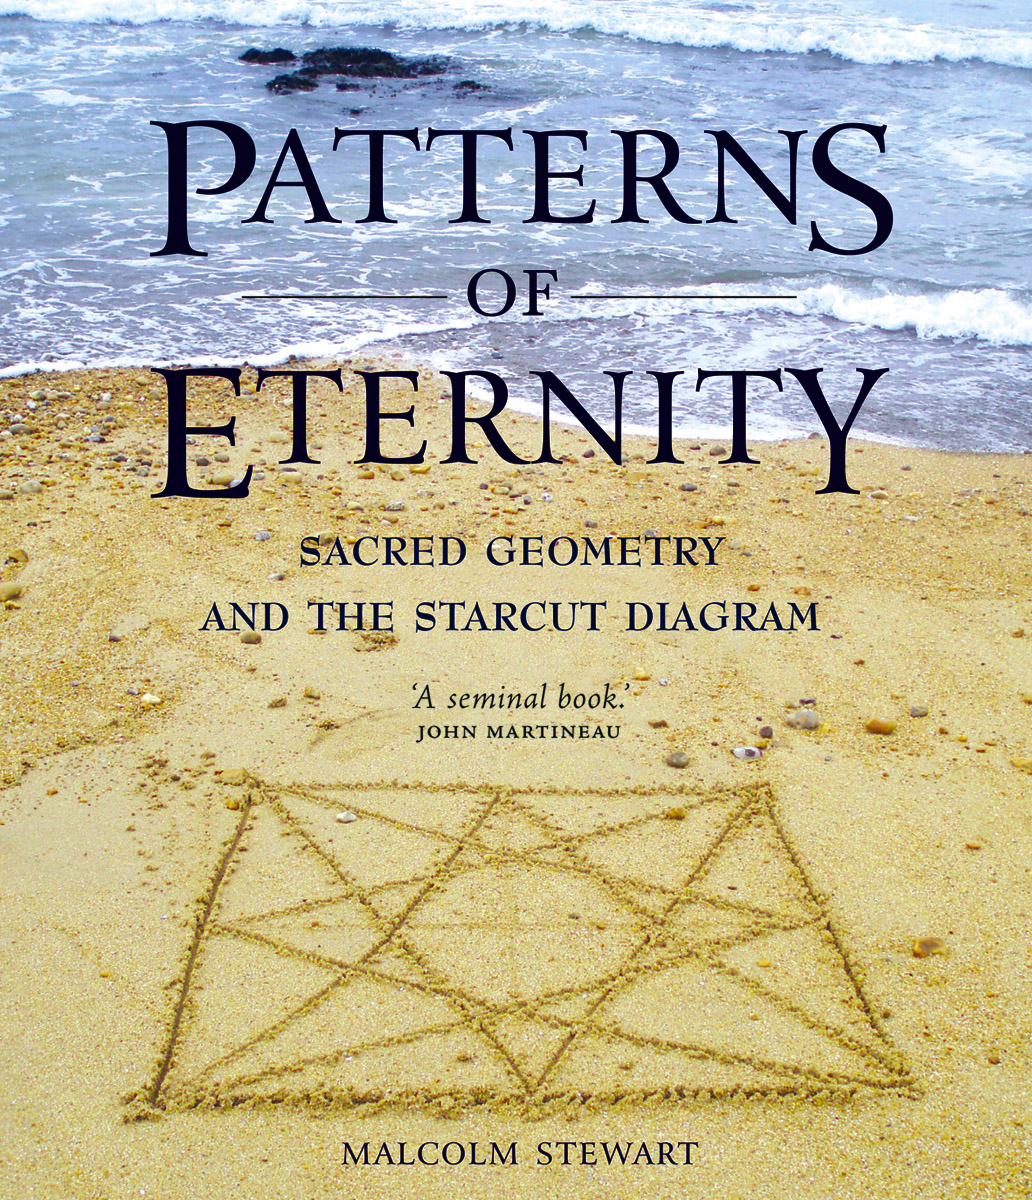 Malcolm stewart patterns of eternity floris books patterns of eternity ccuart Image collections